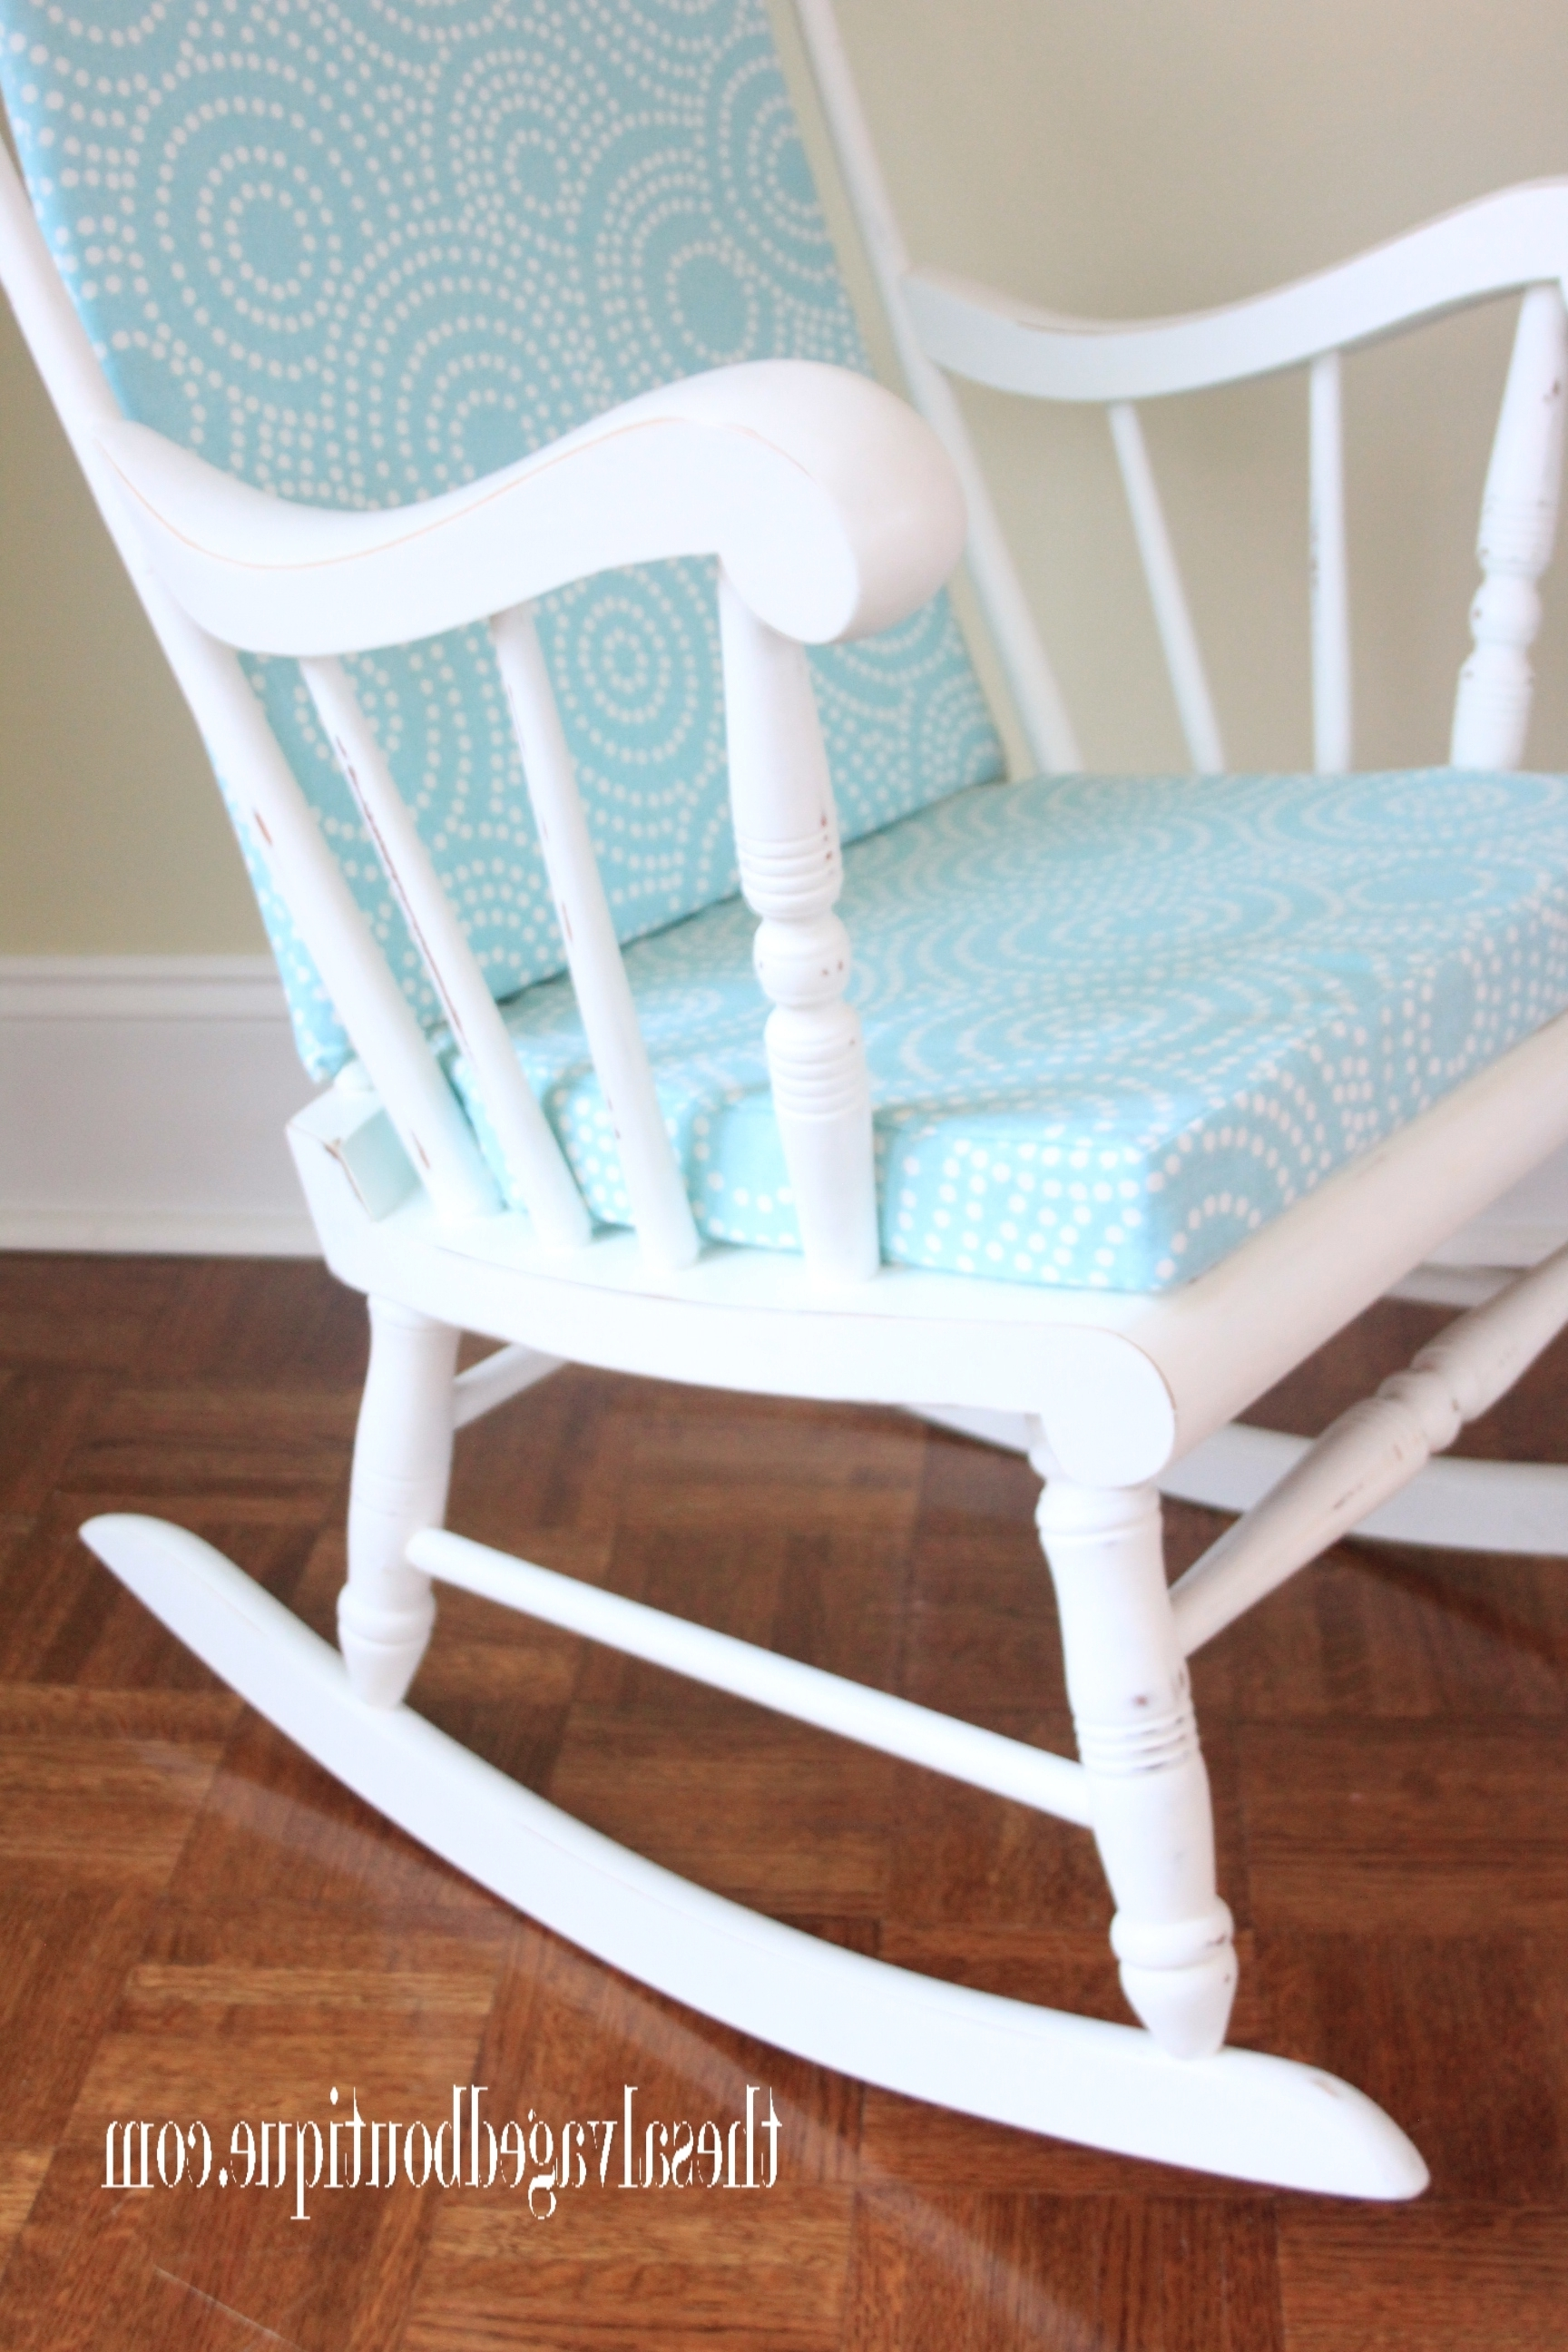 Upcycled Rocking Chairs For 2017 Grandpa's Rocking Chair Brightened Up For New Baby Nursery (View 12 of 15)